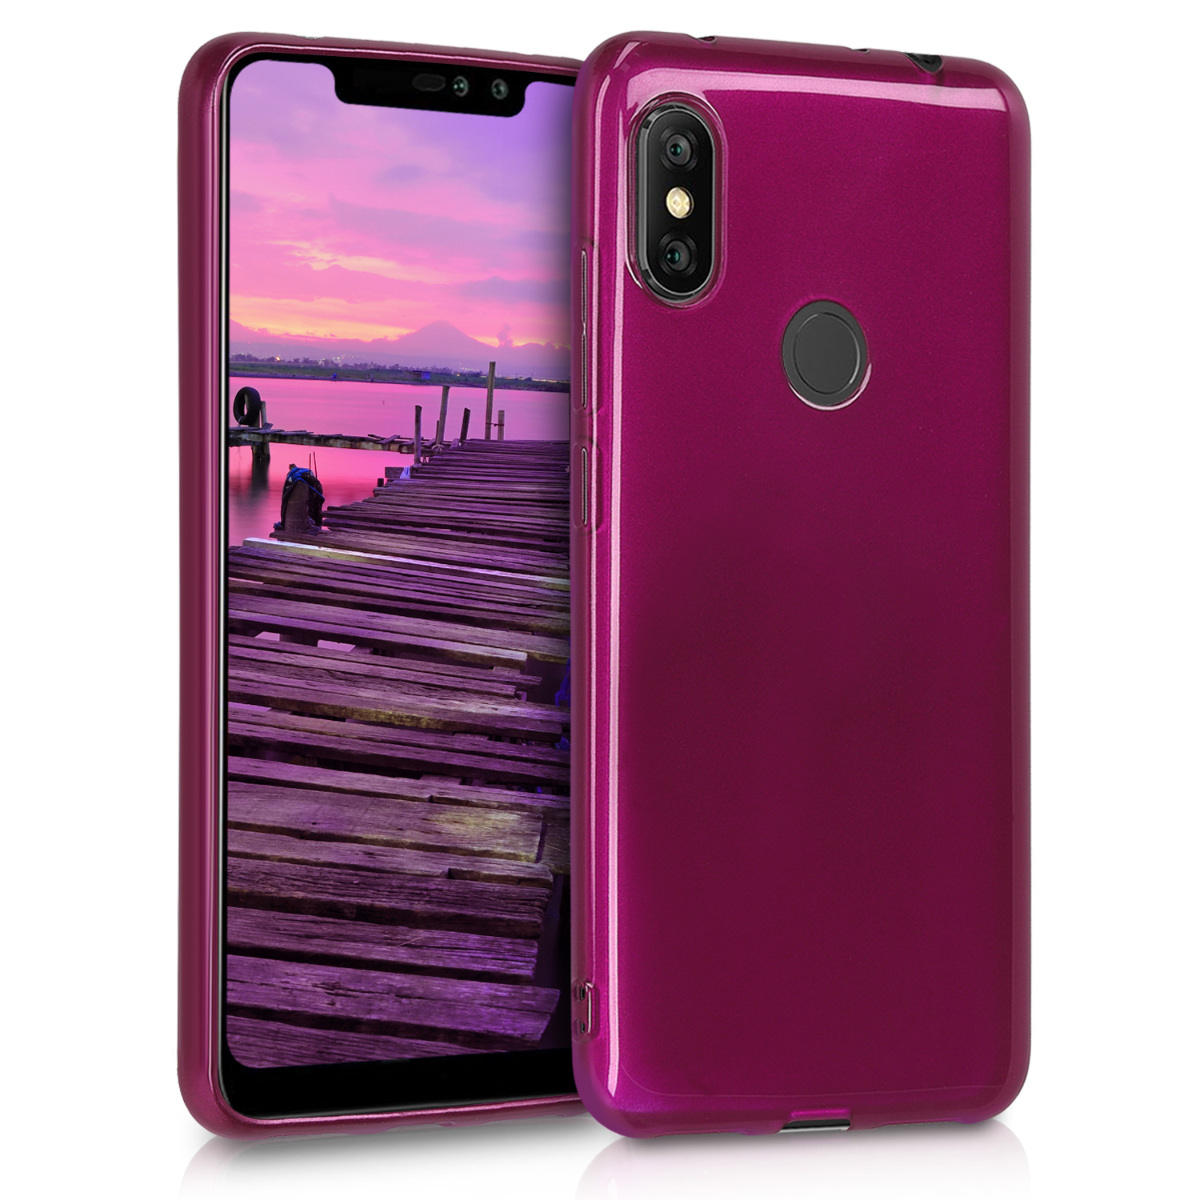 KW Θήκη Σιλικόνης Xiaomi Redmi Note 6 Pro - Purple High Gloss (47122.117)